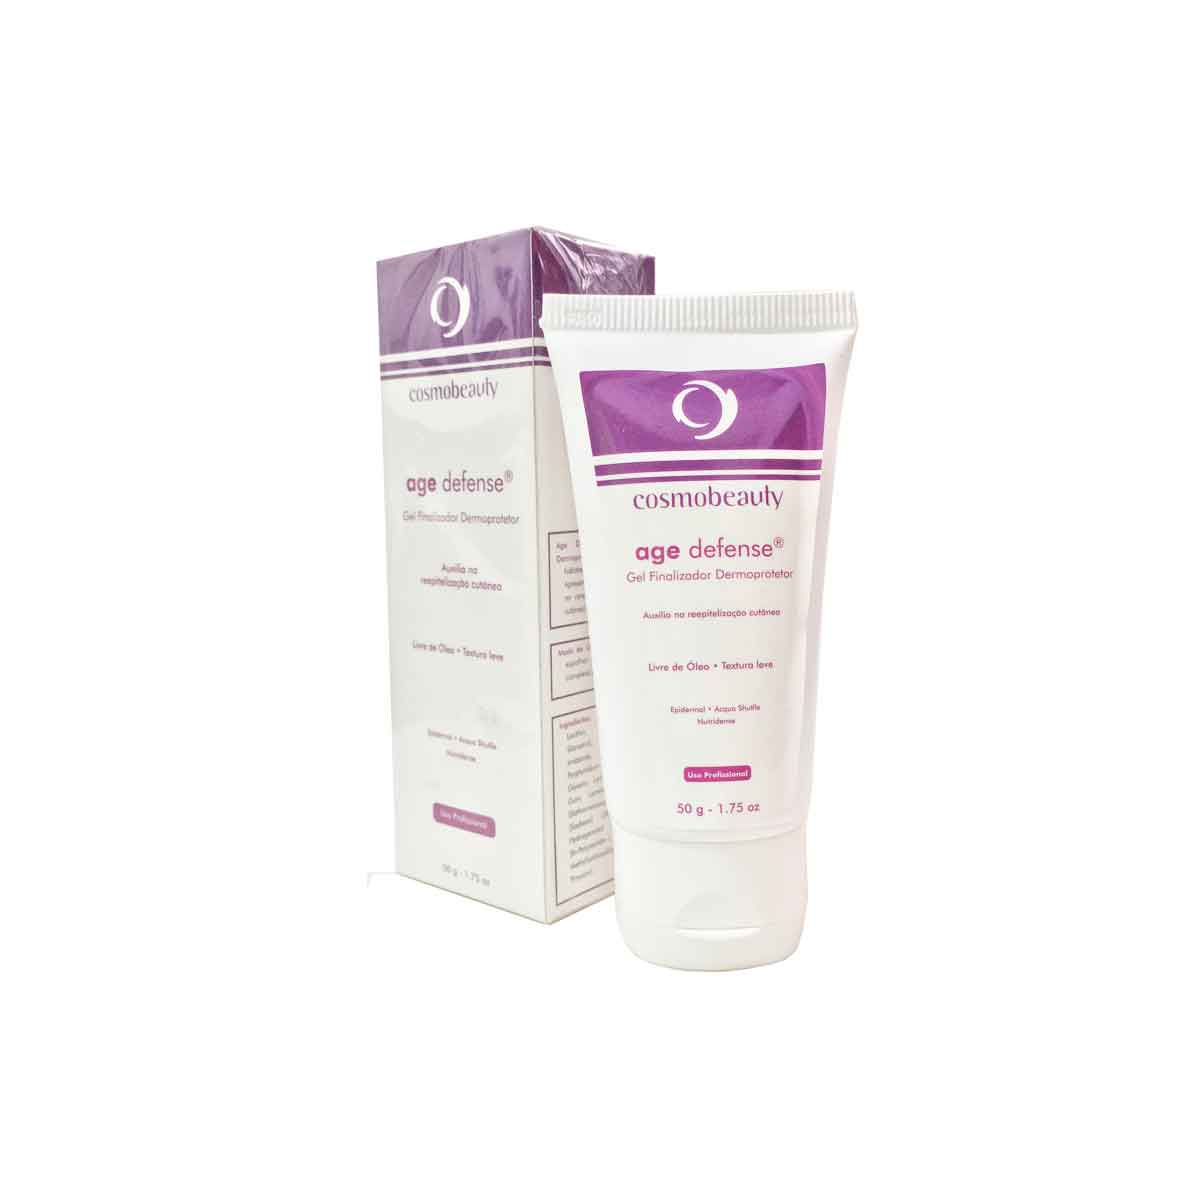 Gel Finalizador Age Defense - 50g